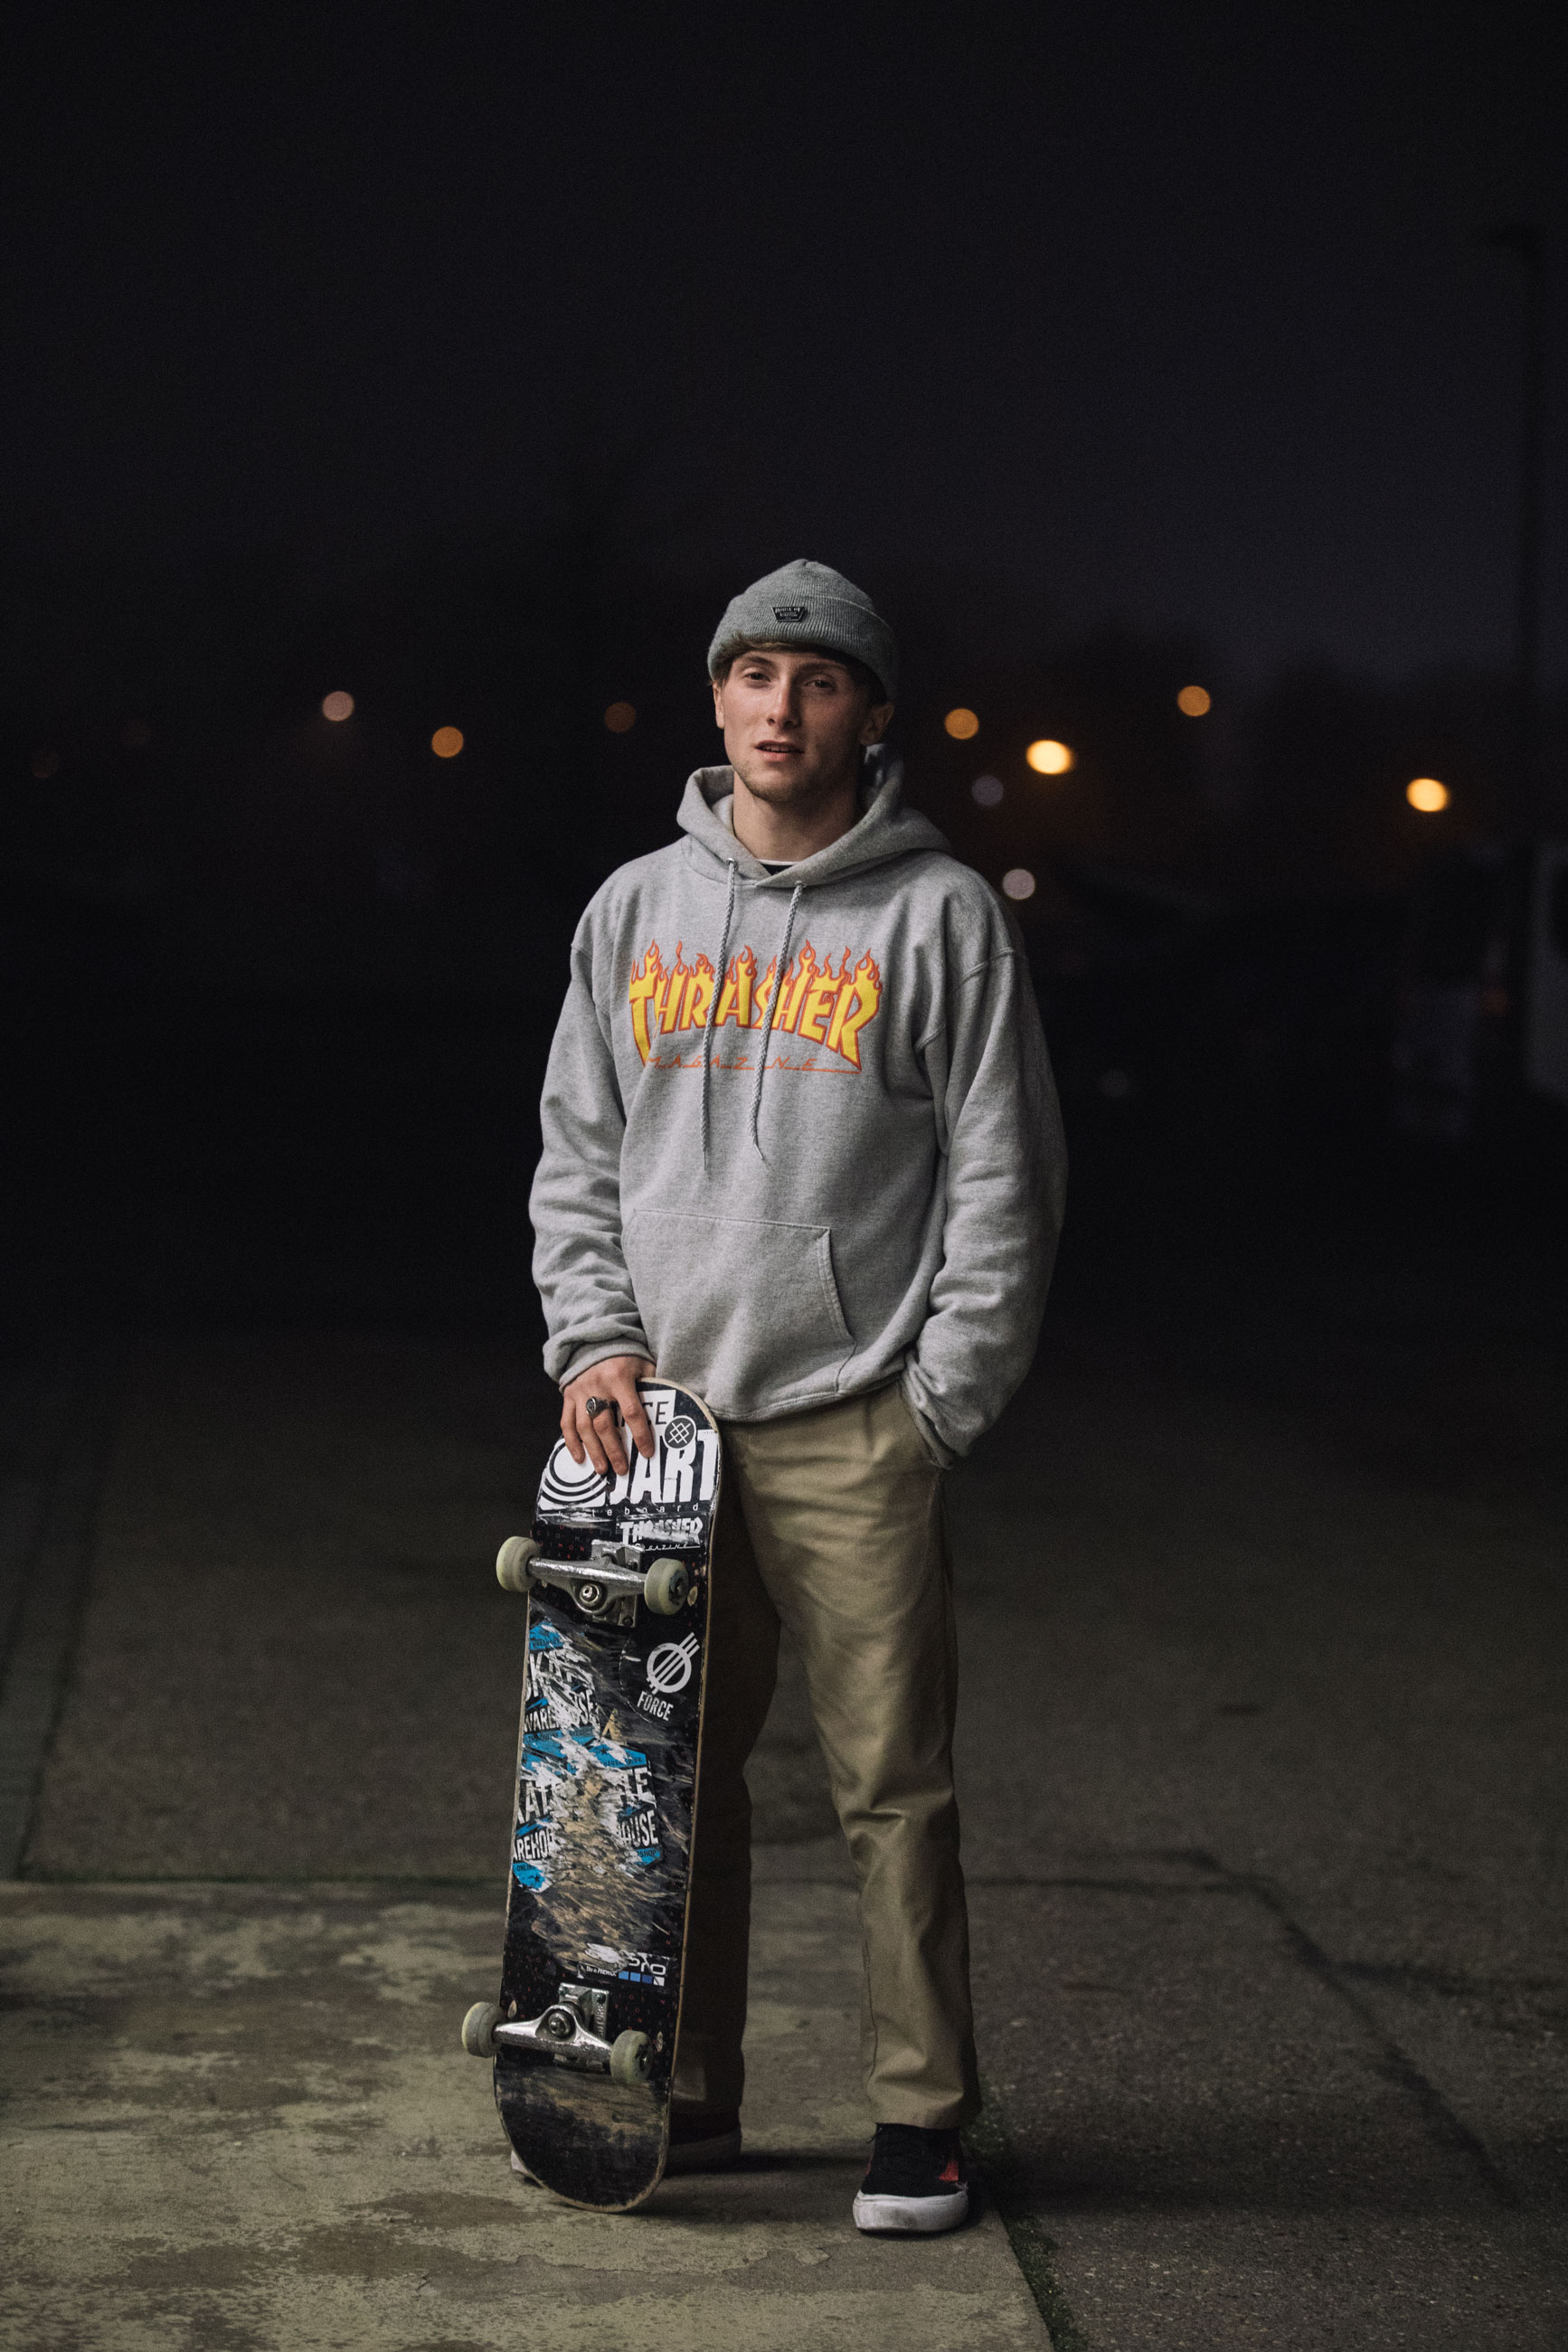 """Alex DeCunha, 20, Skate Warehouse (UK). """"I think the importance of skate shops is guidance, without them people would just buy random things that might not be best for them. Plus, learning to skate in front of huge groups of people really helps with your confidence in day-to-day situations."""""""